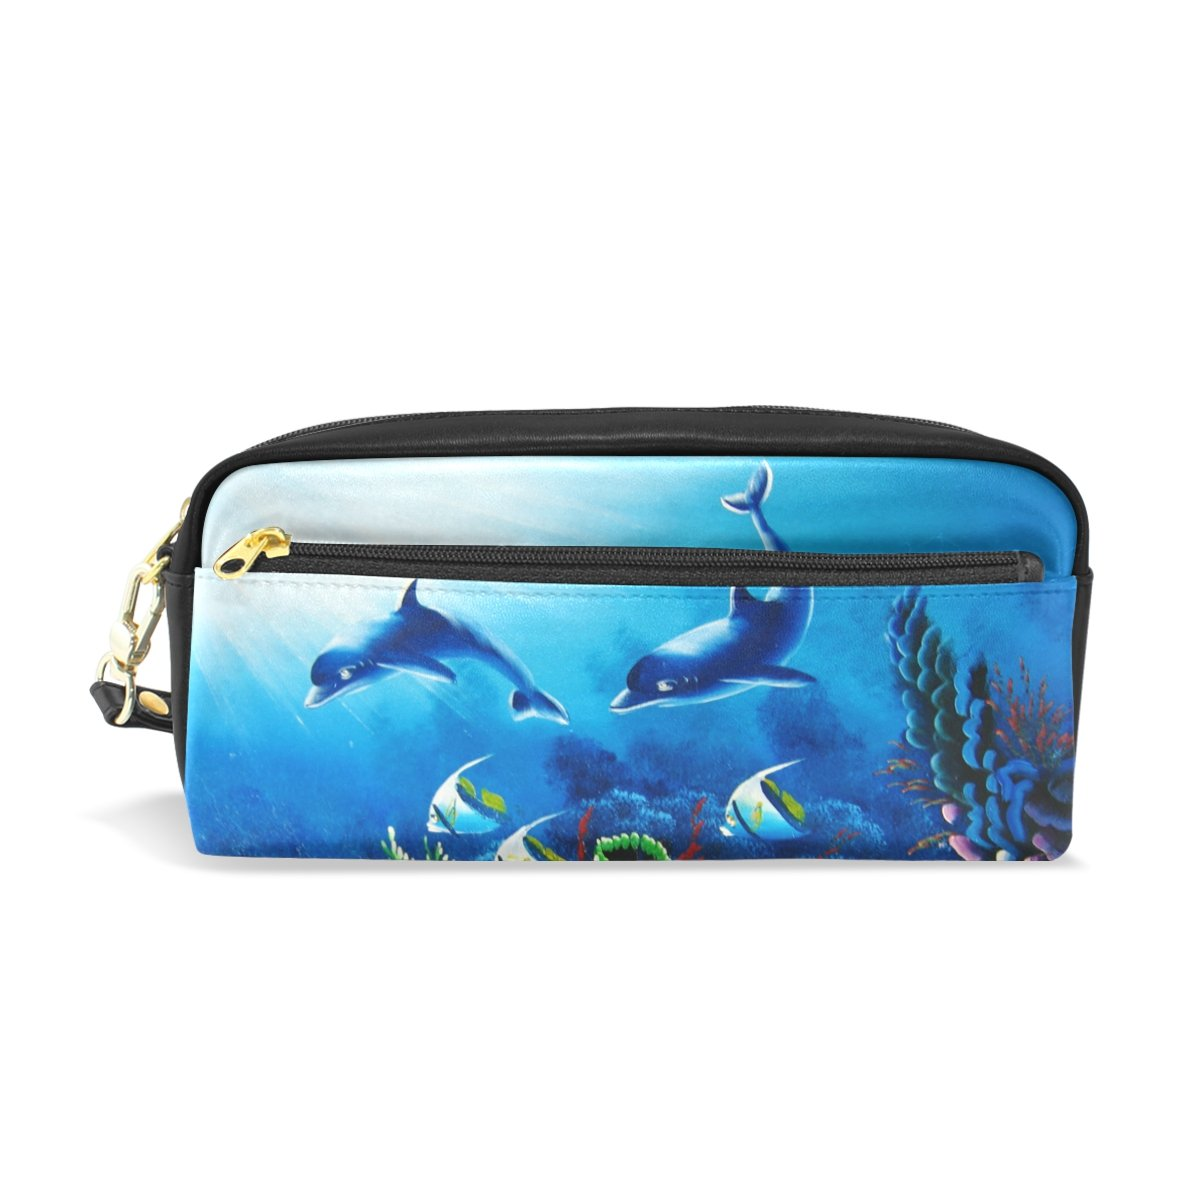 94587d7e0179 FeiHuang Shark Leather Student Pencil Case Pen Cosmetic Bag for ...